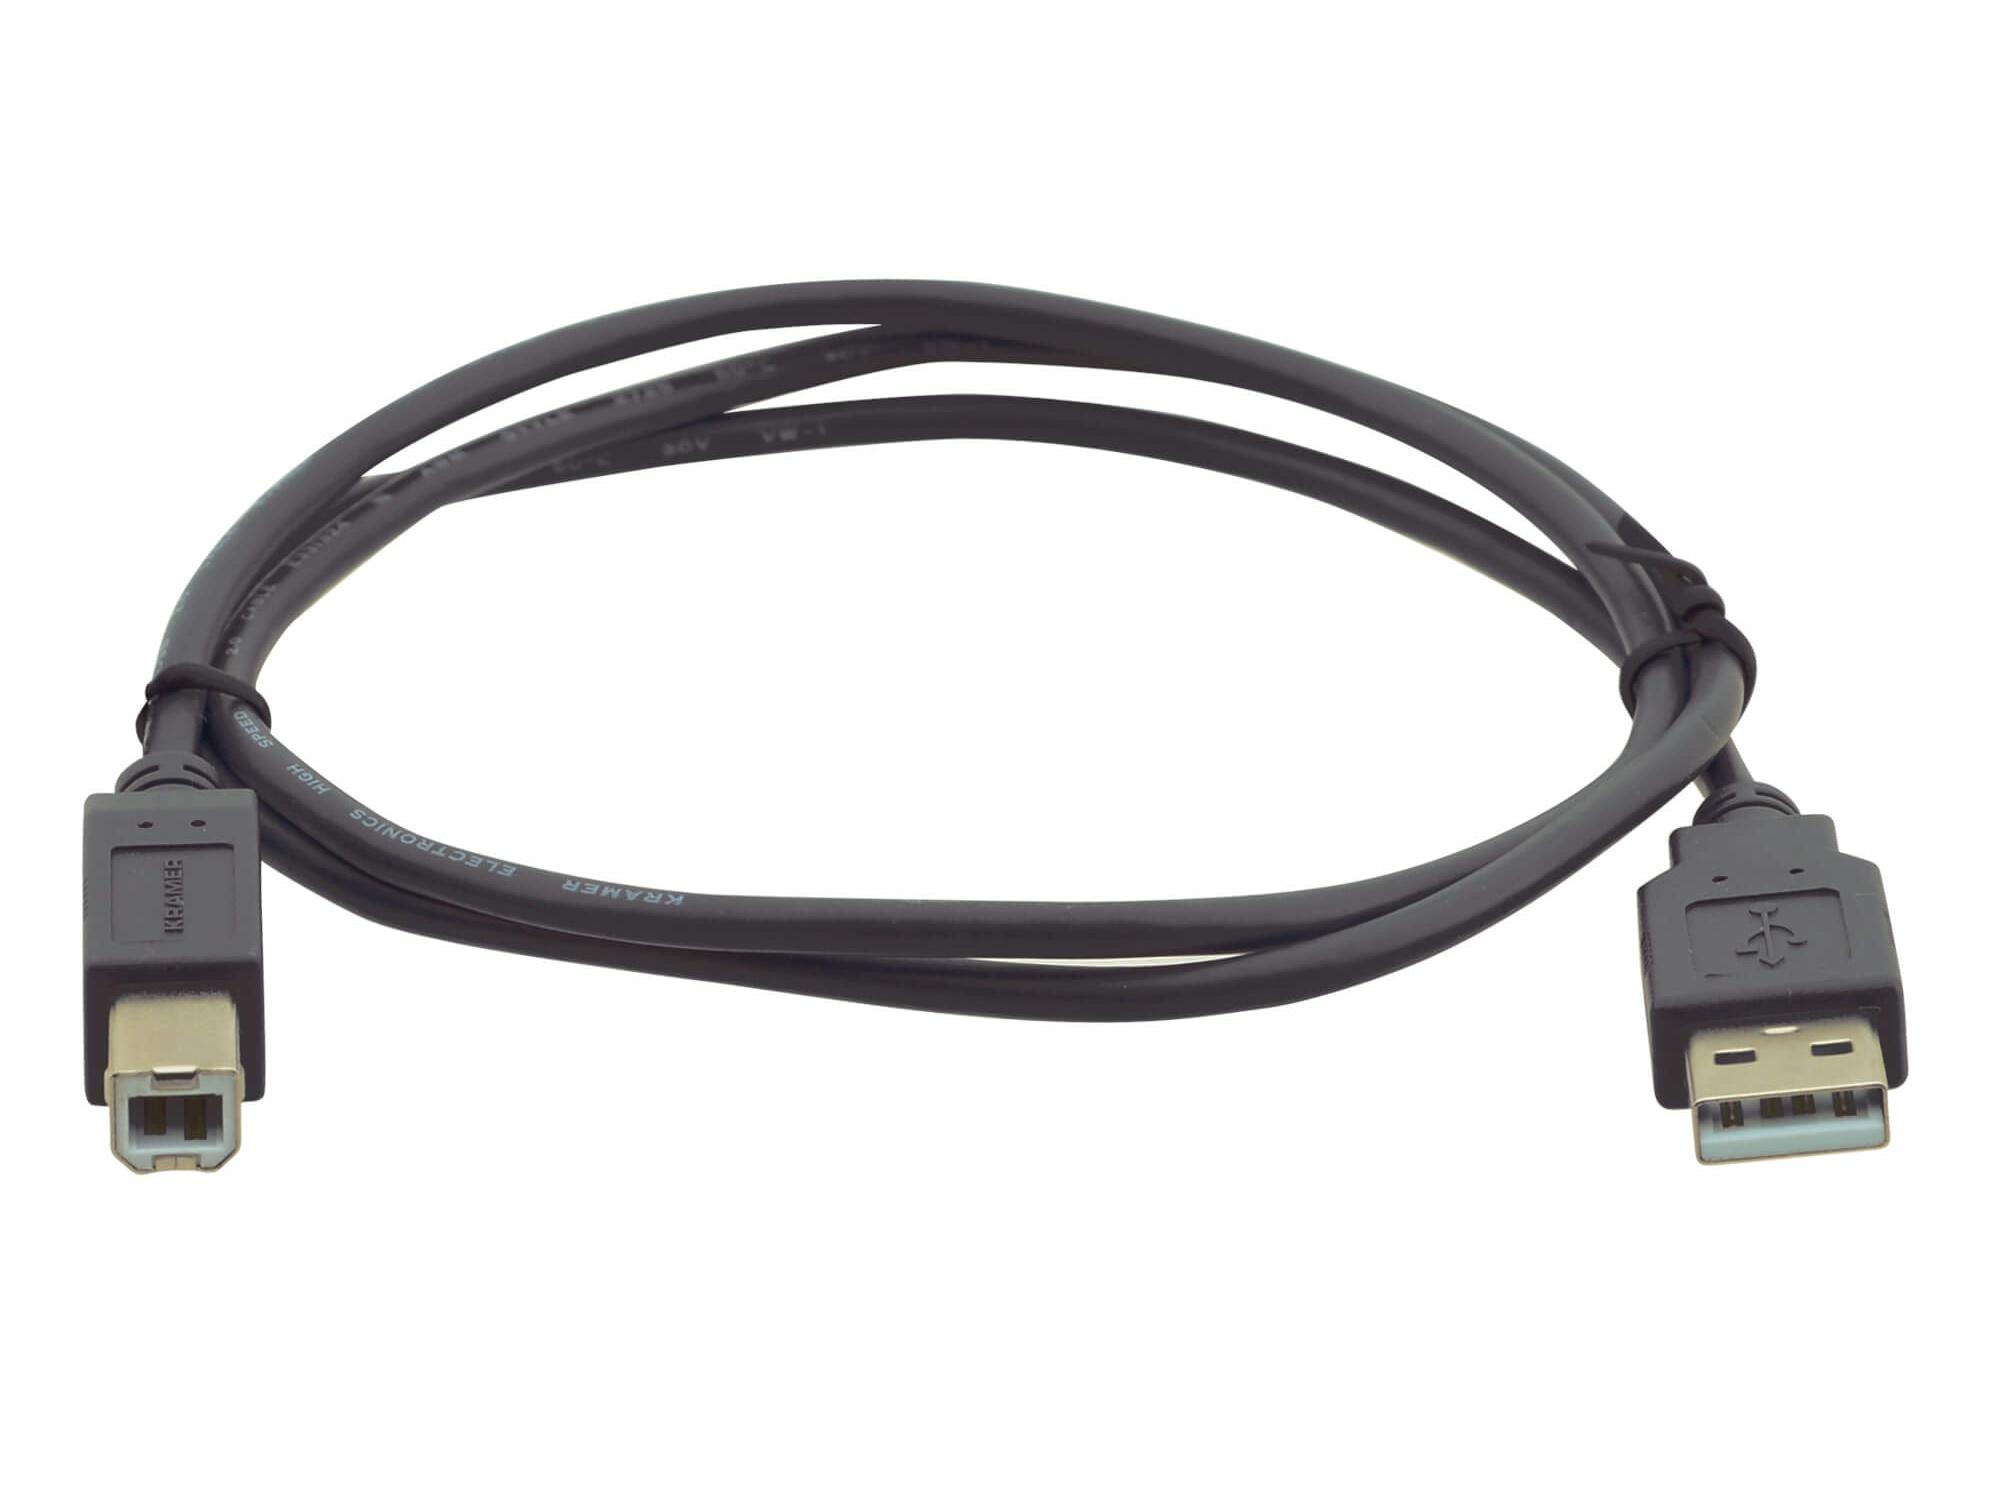 C-USB/AB-3 USB 2.0 Type A to Type B Printer Cable - 3ft by Kramer